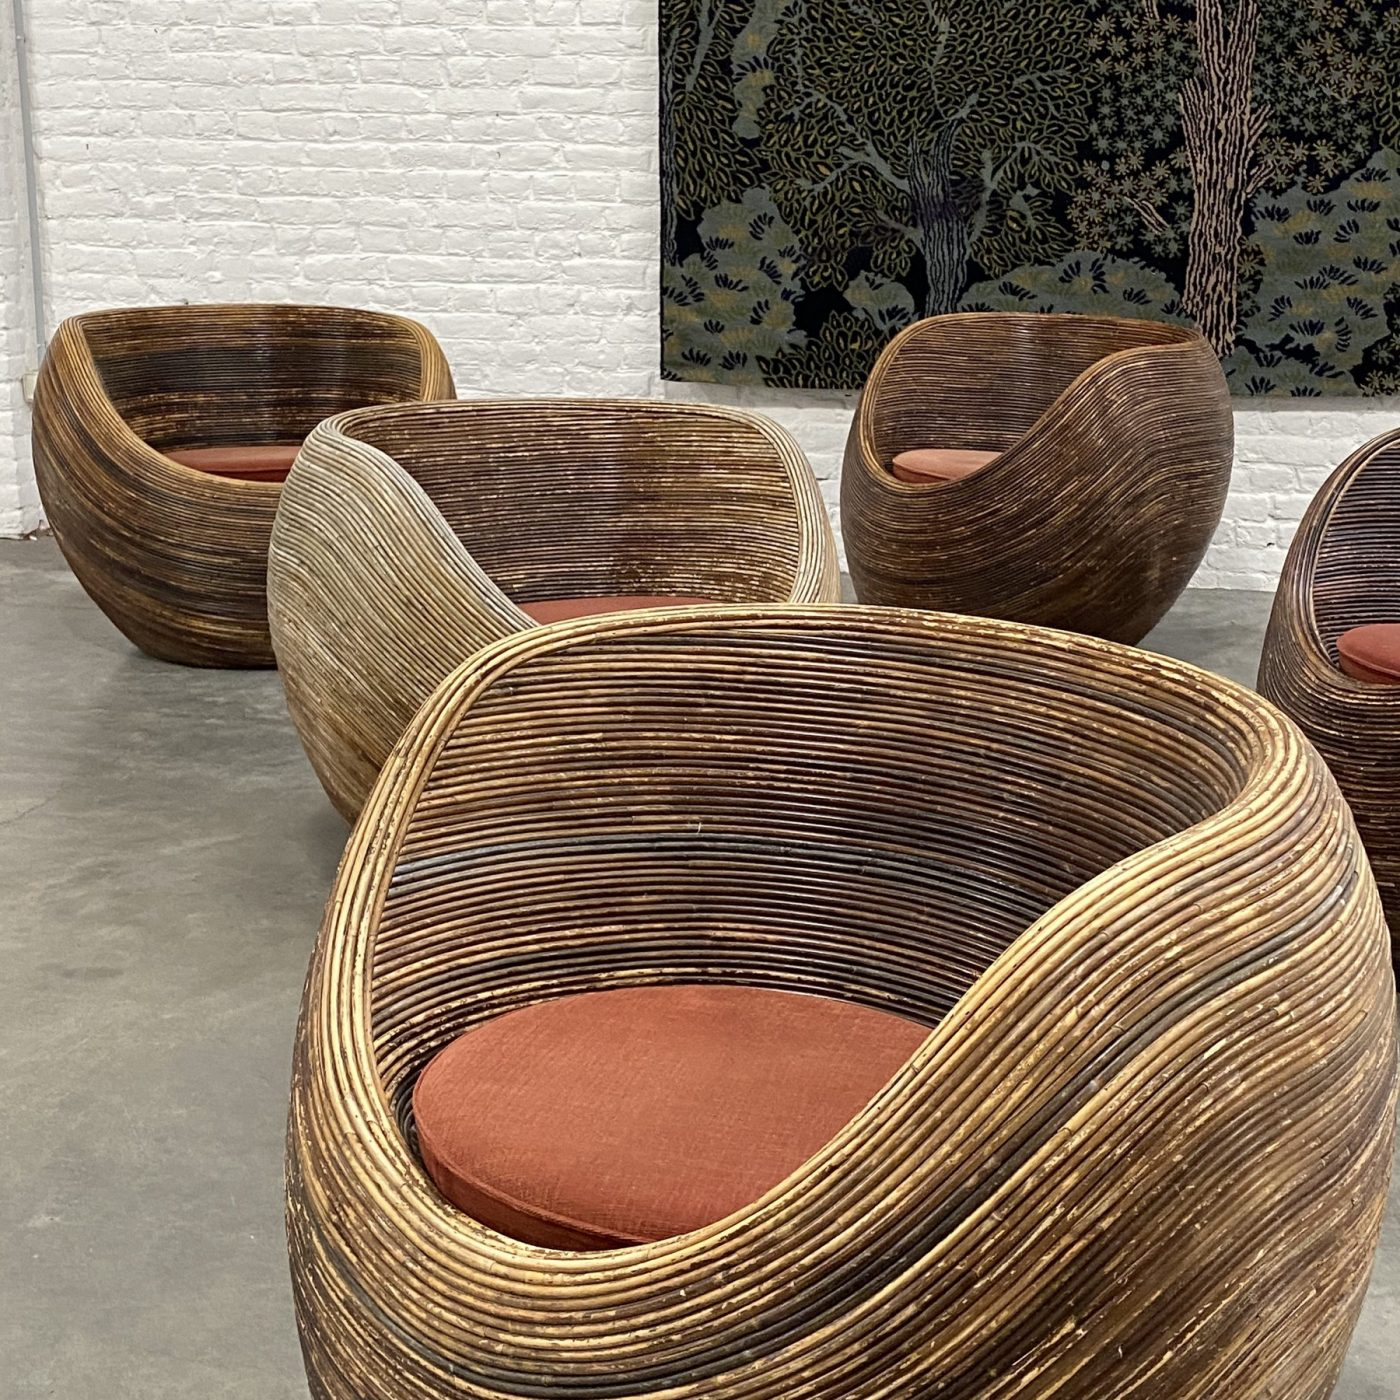 objet-vagabond-bamboo-chairs0003